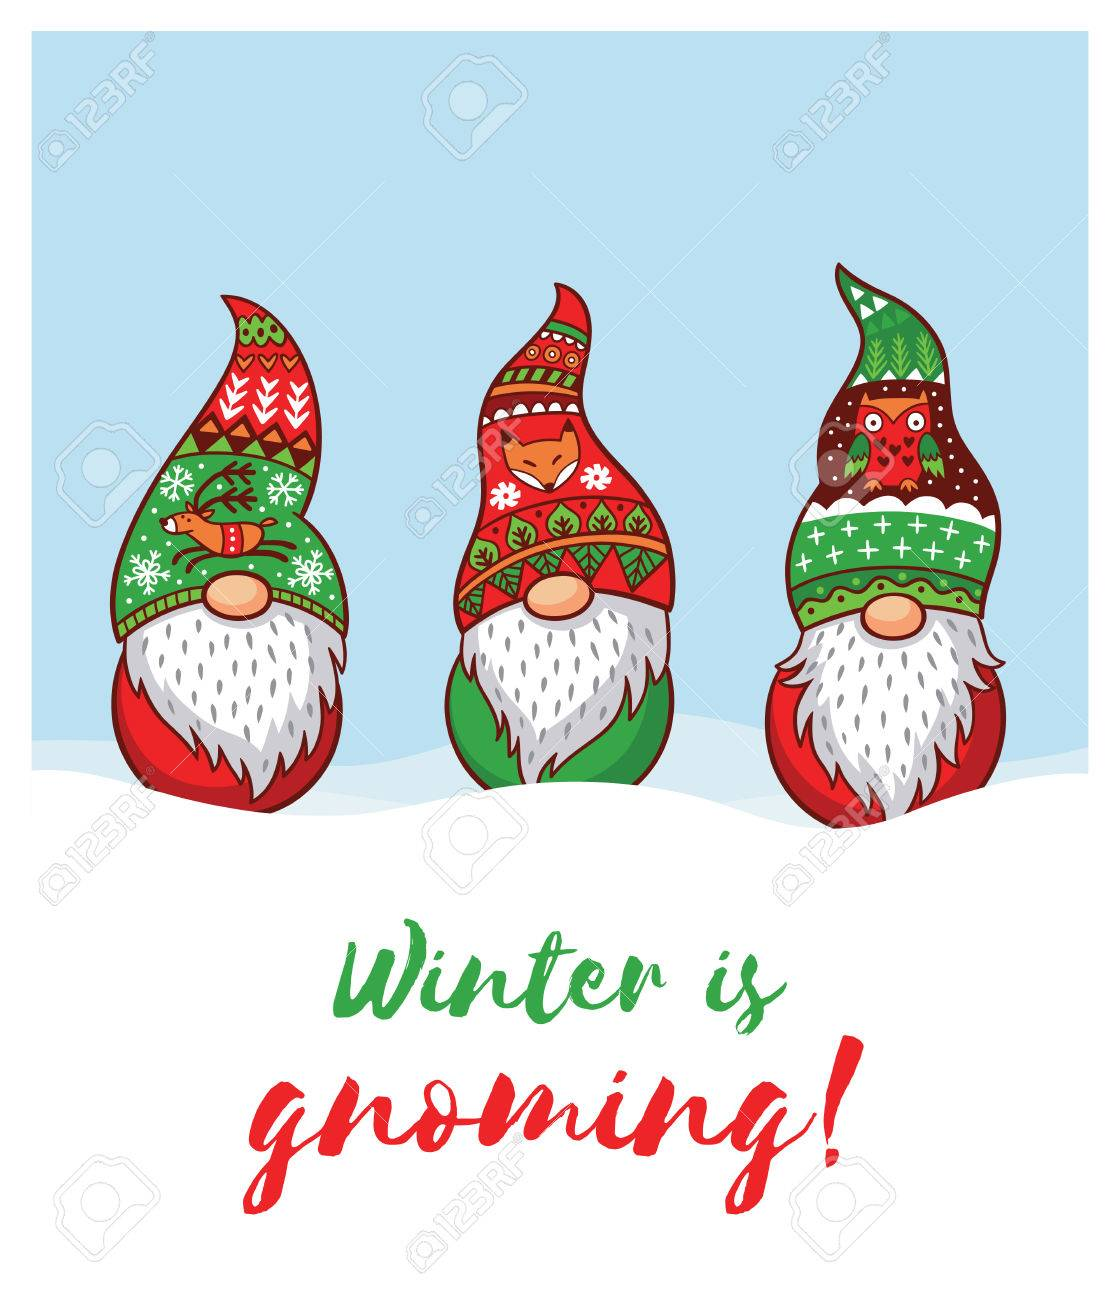 winter is gnoming happy holidays card with trolls gnomes cute